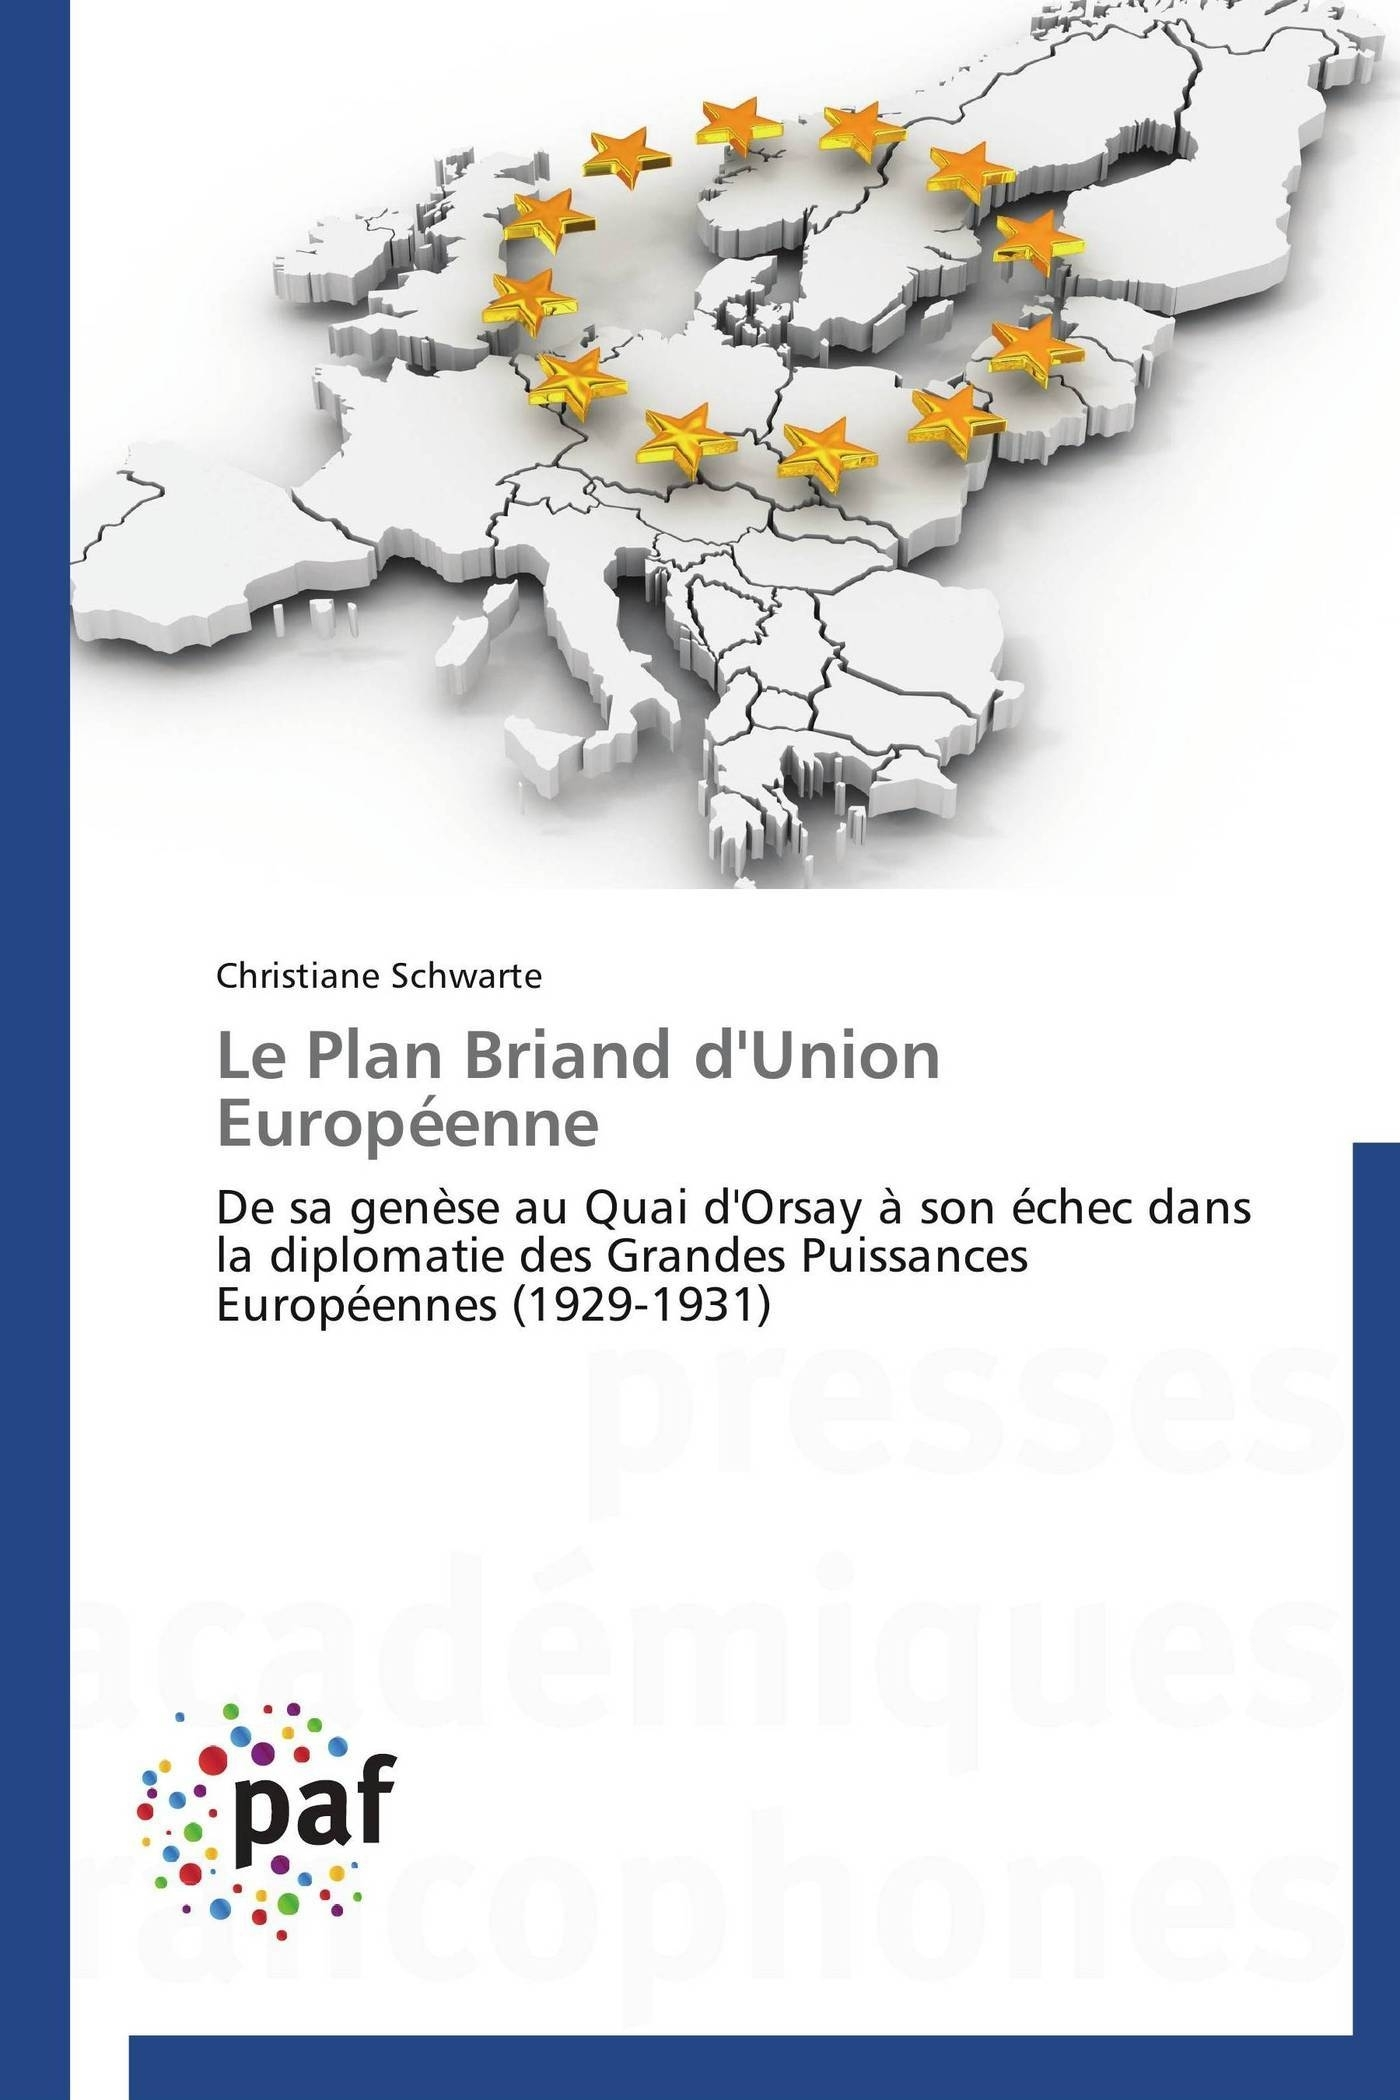 LE PLAN BRIAND D'UNION EUROPEENNE